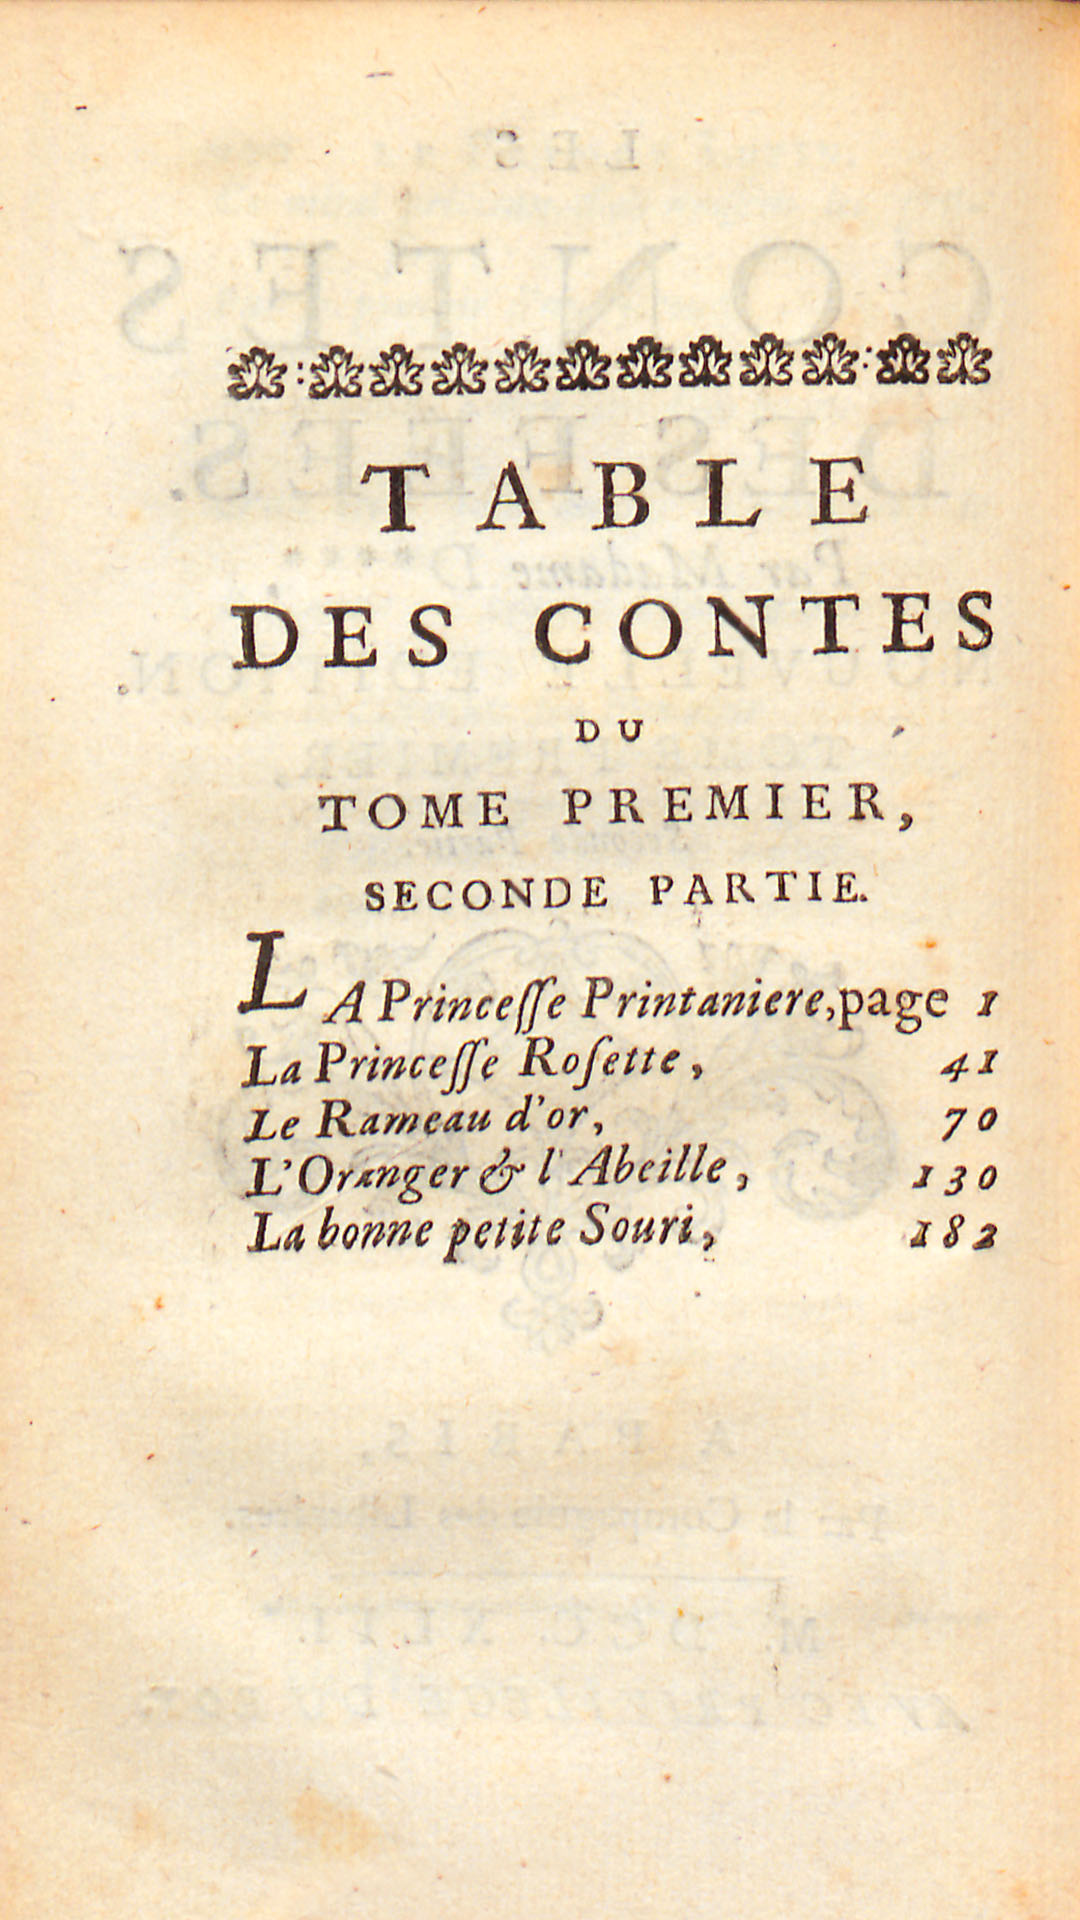 Table des contes, tome premier, seconde partie